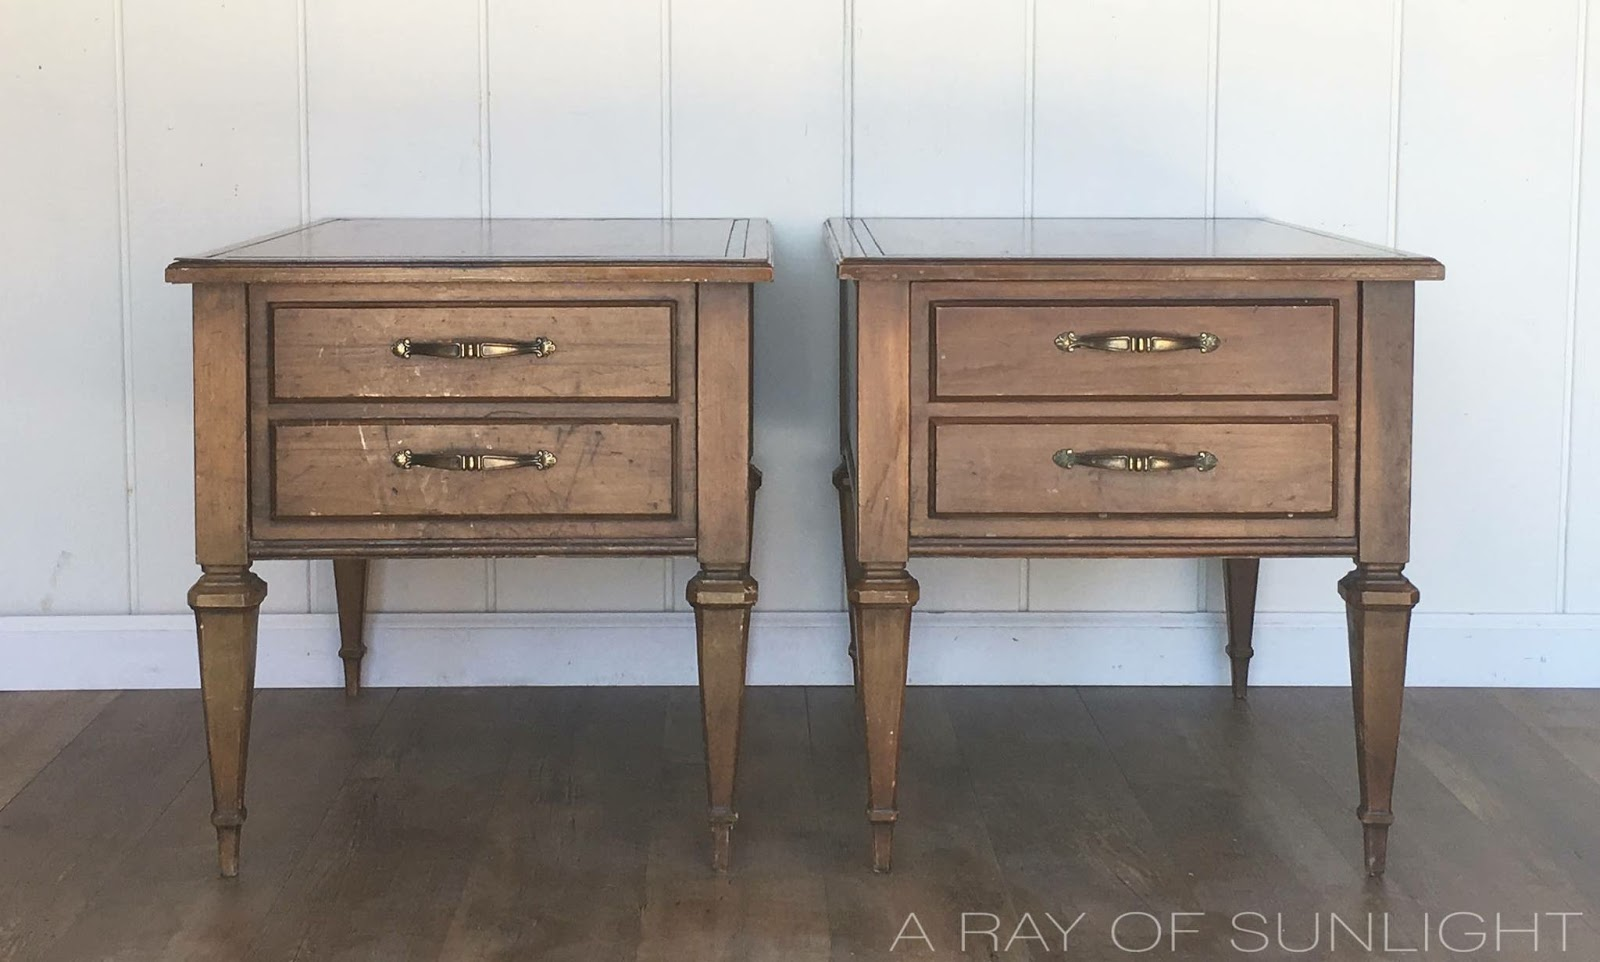 Thrifted End Tables Makeover in Light Gray Chalk Paint with a Raised Texture on the Drawer Fronts by A Ray of Sunlight